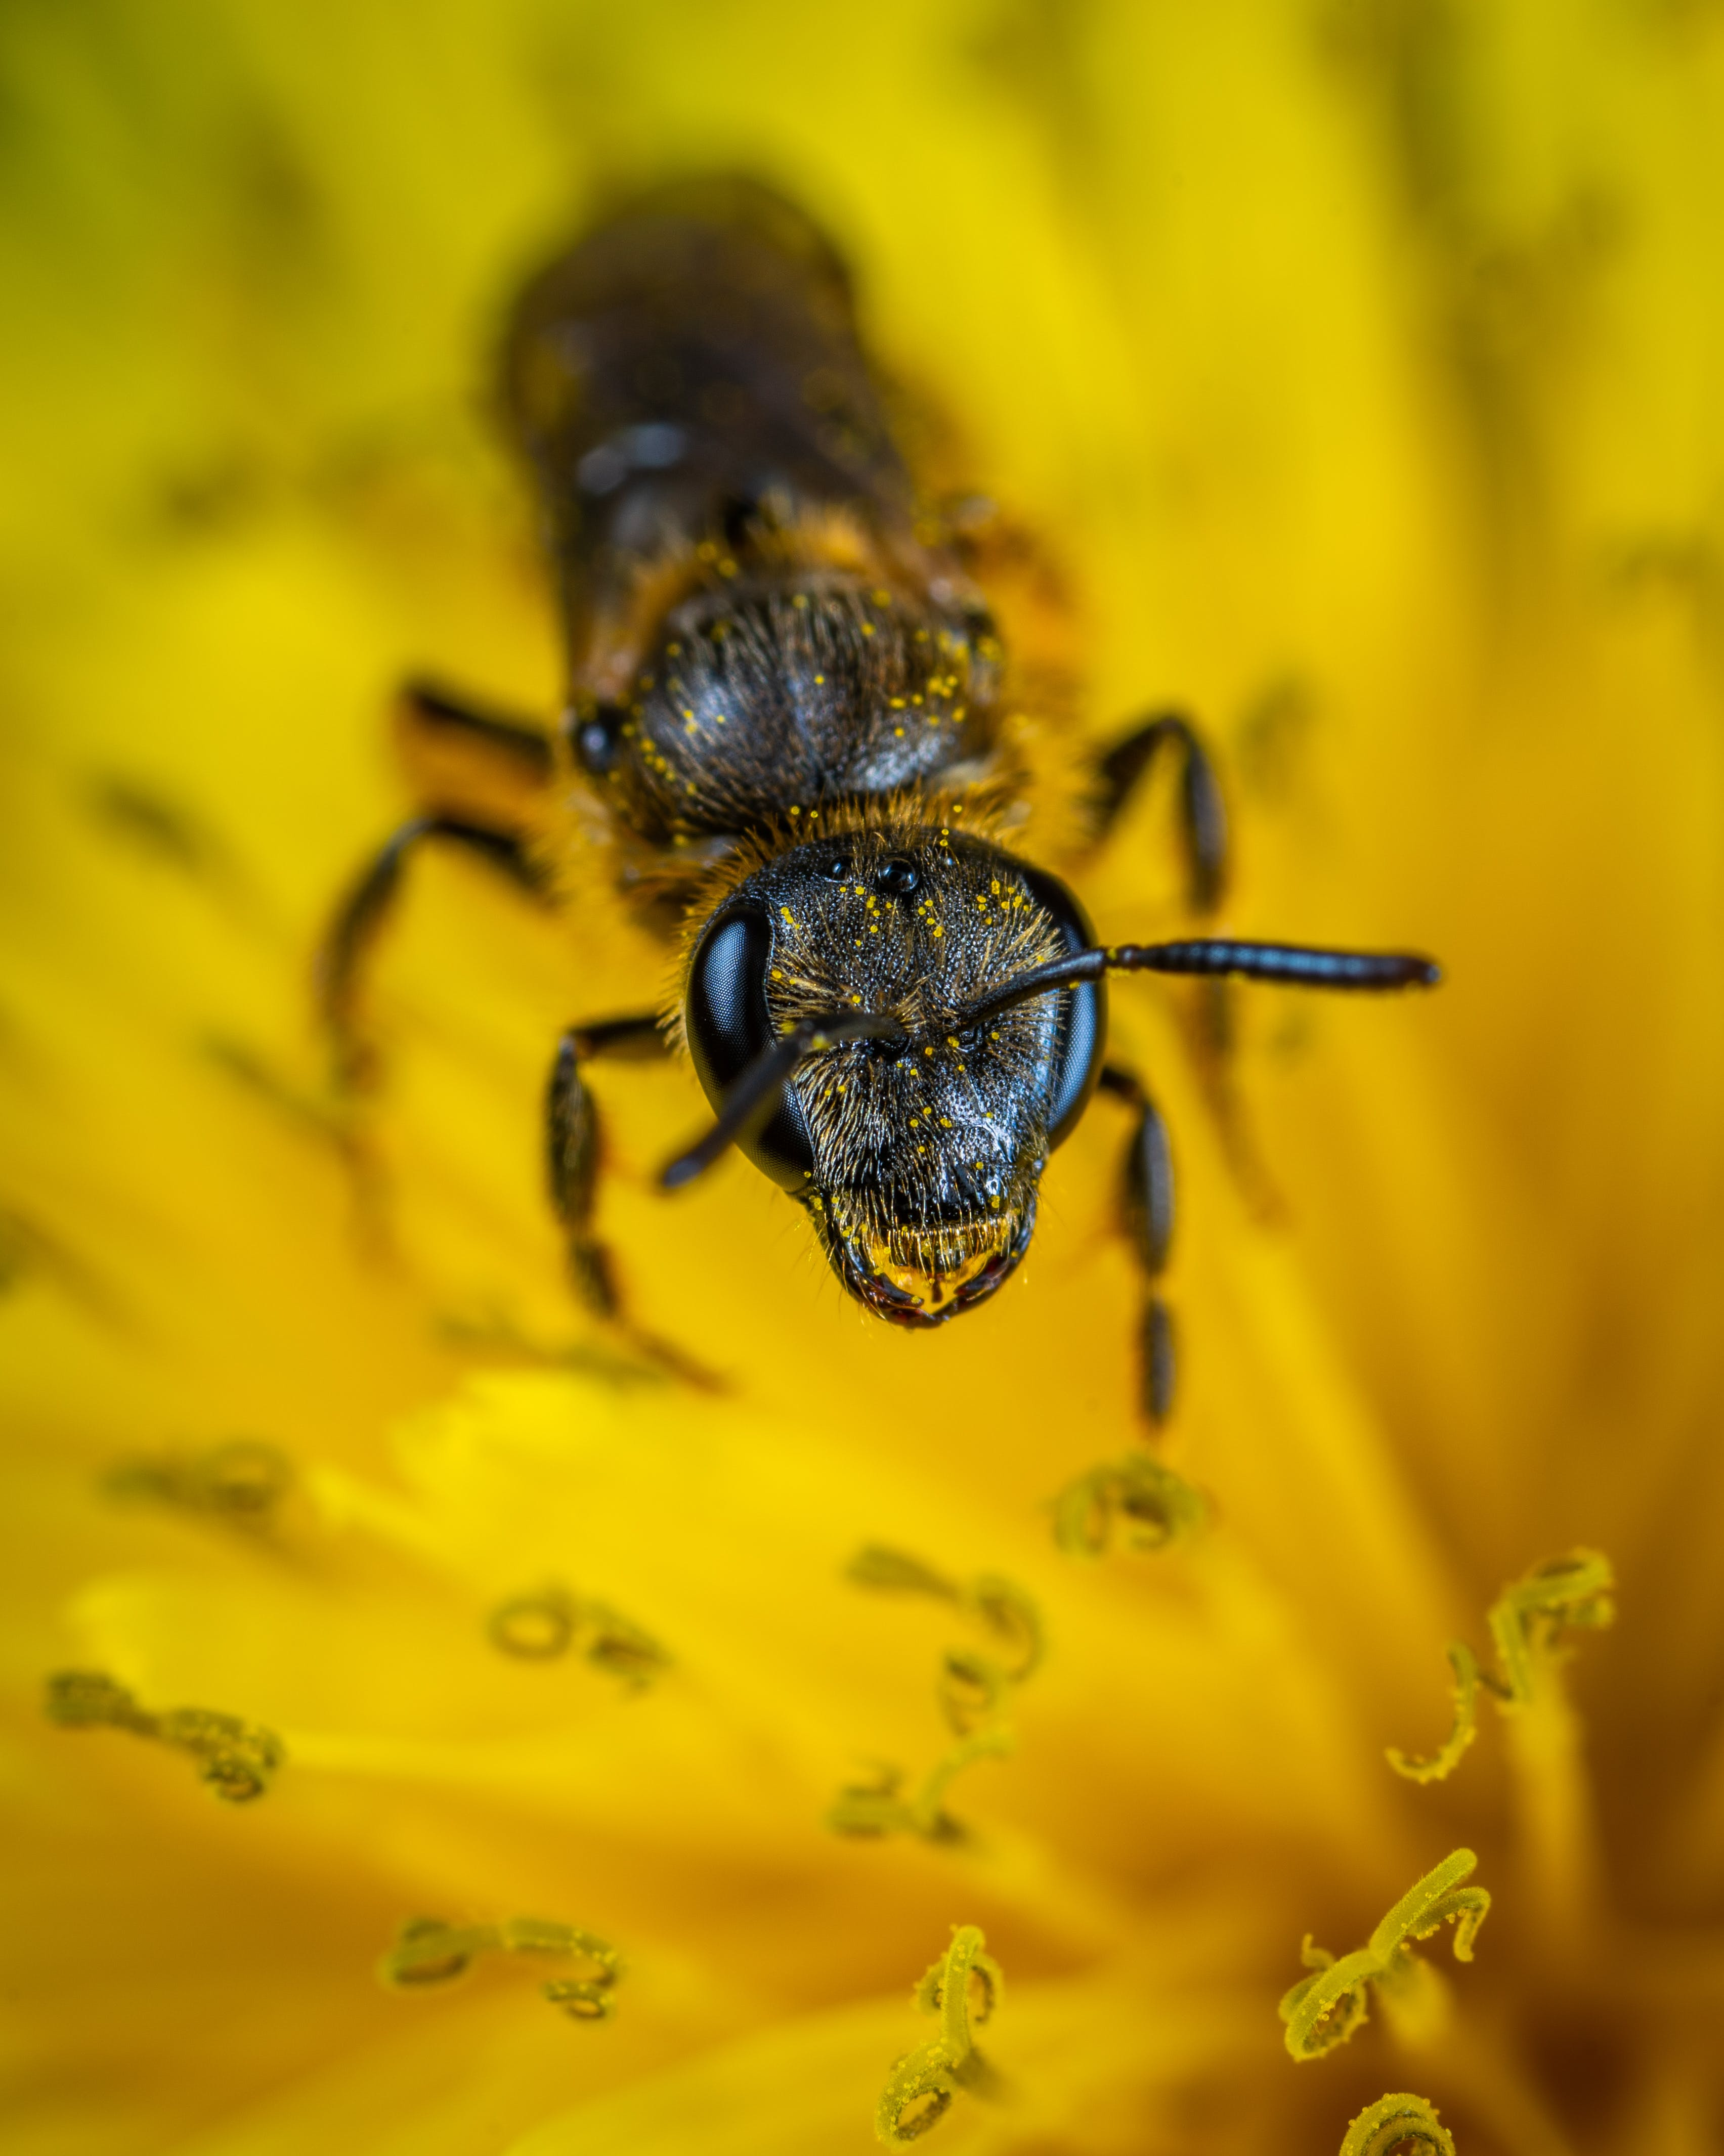 Black Ant on Yellow Petaled Flower